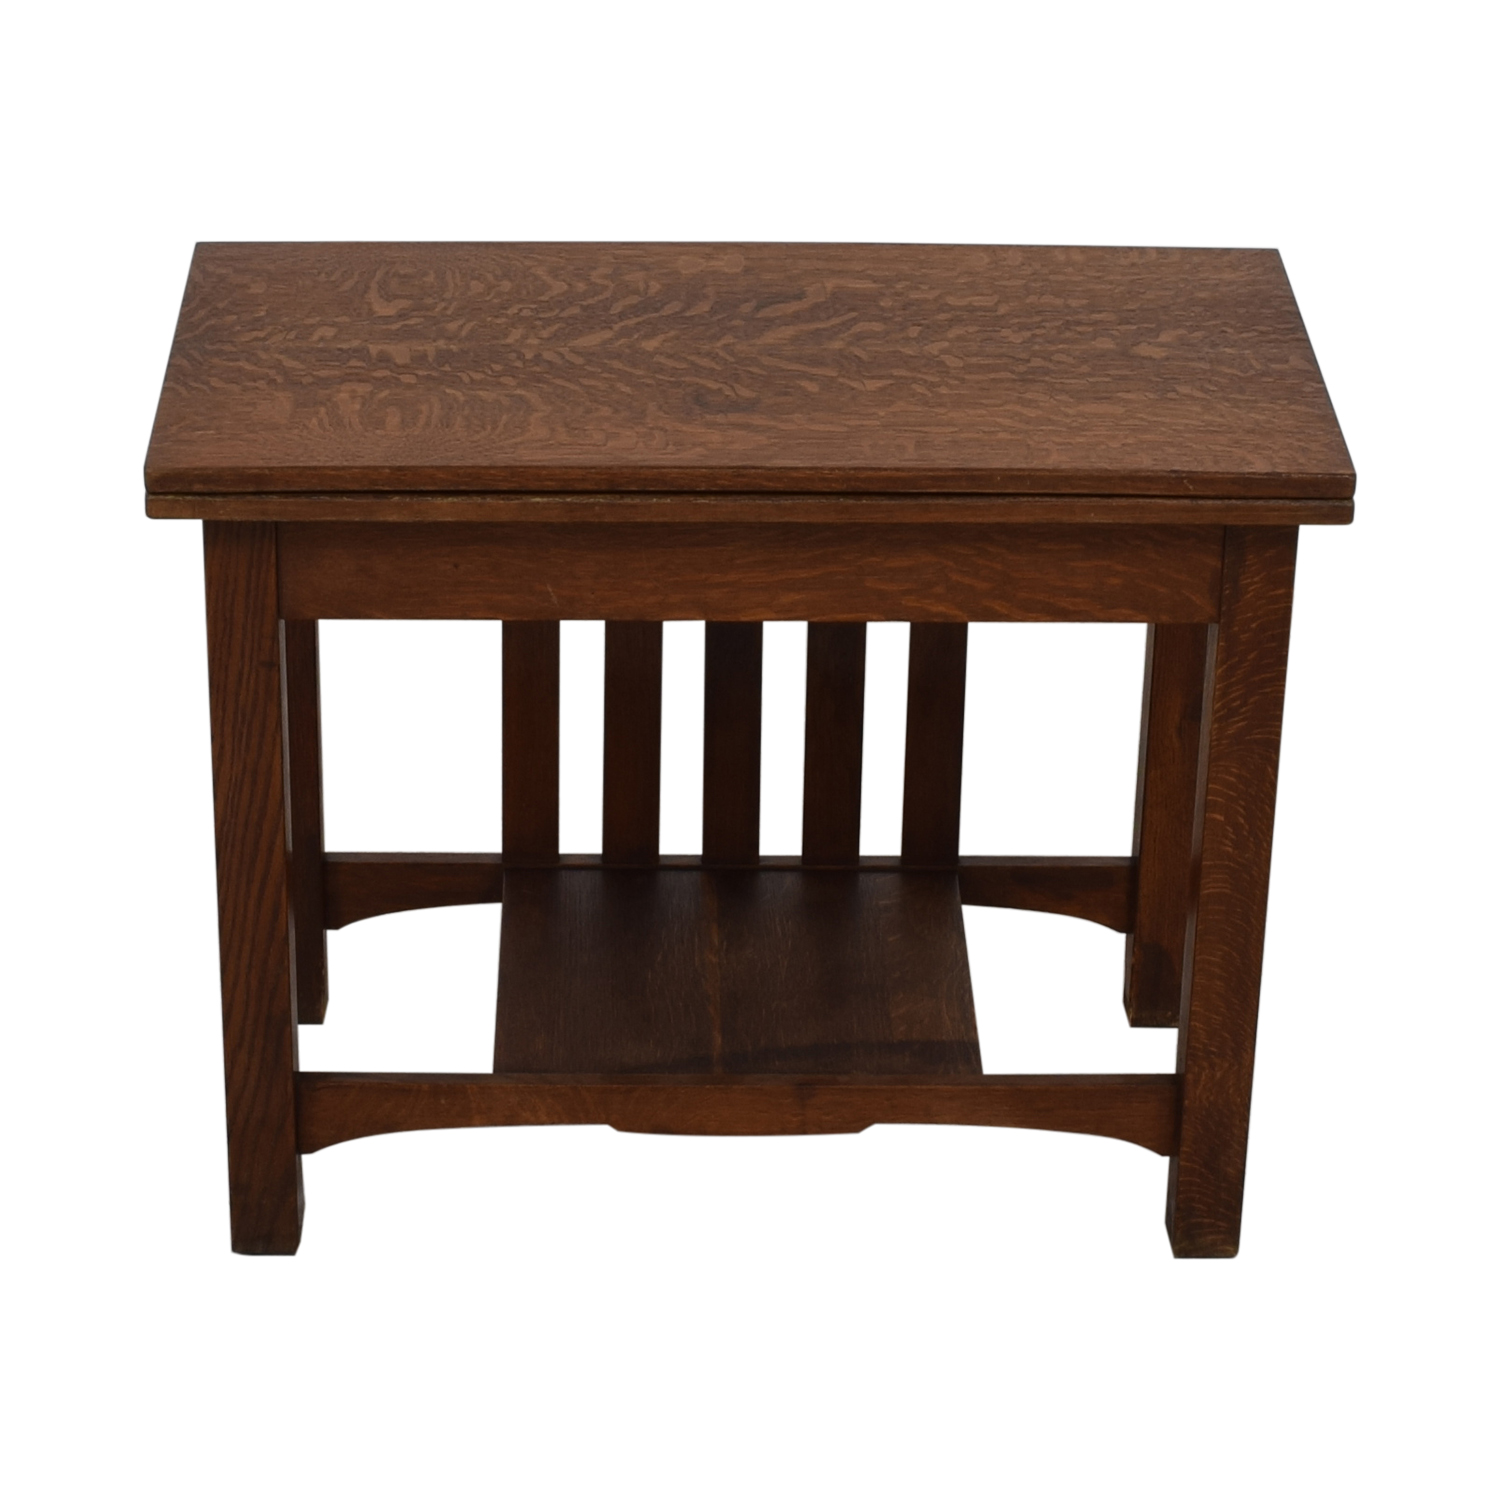 Stickley Furniture Stickley Game Table on sale